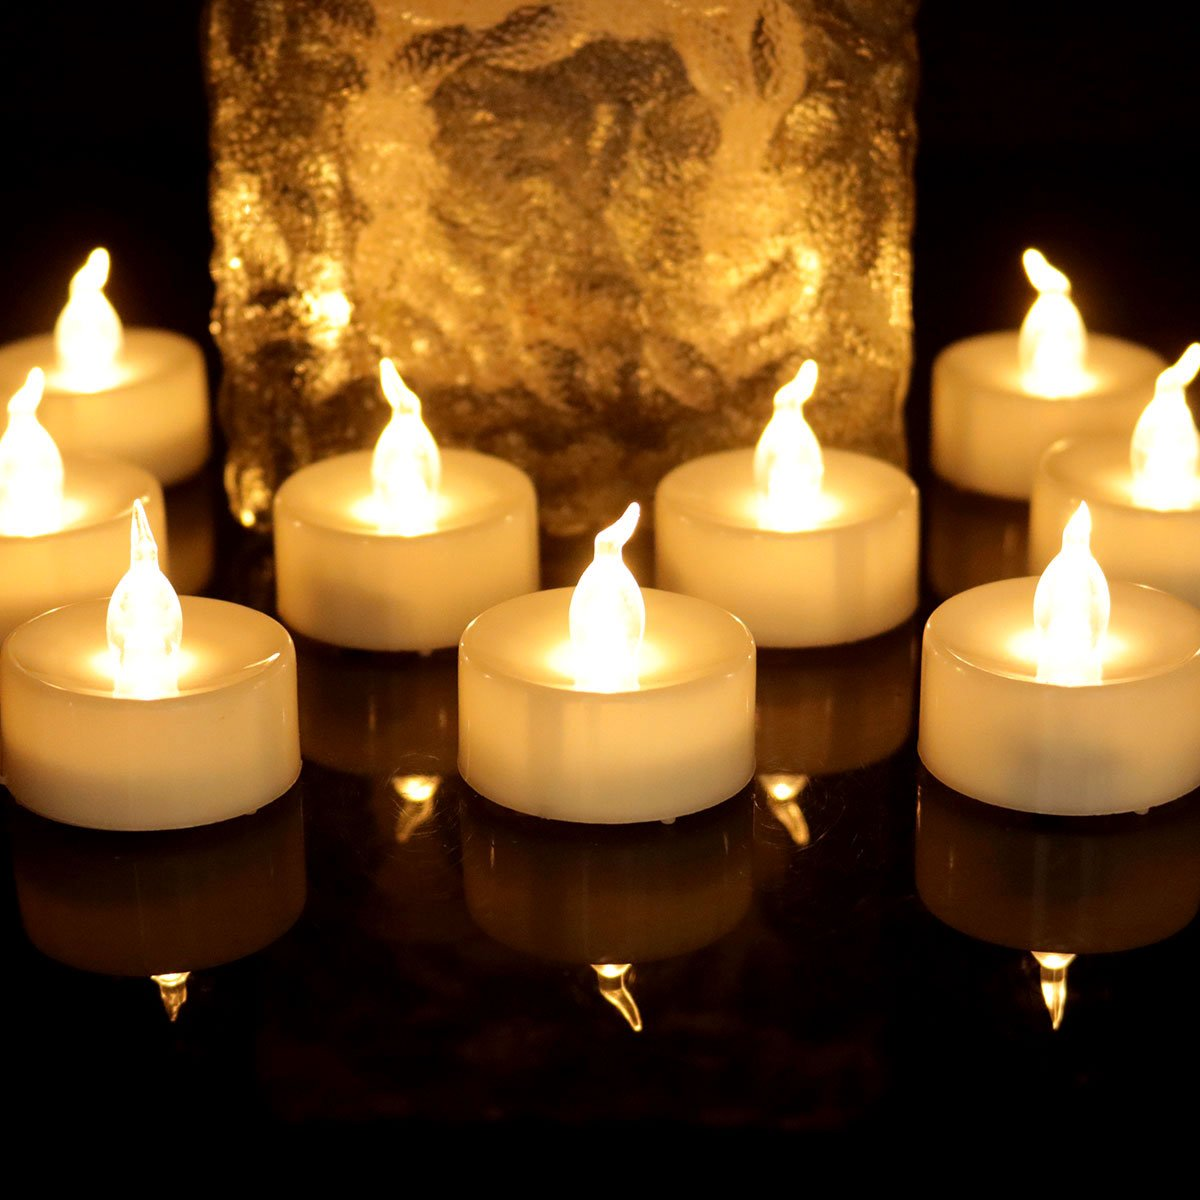 200 Hours Long Lasting Led Votive Candle Warm White Flickering Flameless Realistic Artificial Small Mini Battery Operated Tealight Candle for Christmas Thanks Giving Day Night Party, 24PCS, 1012F